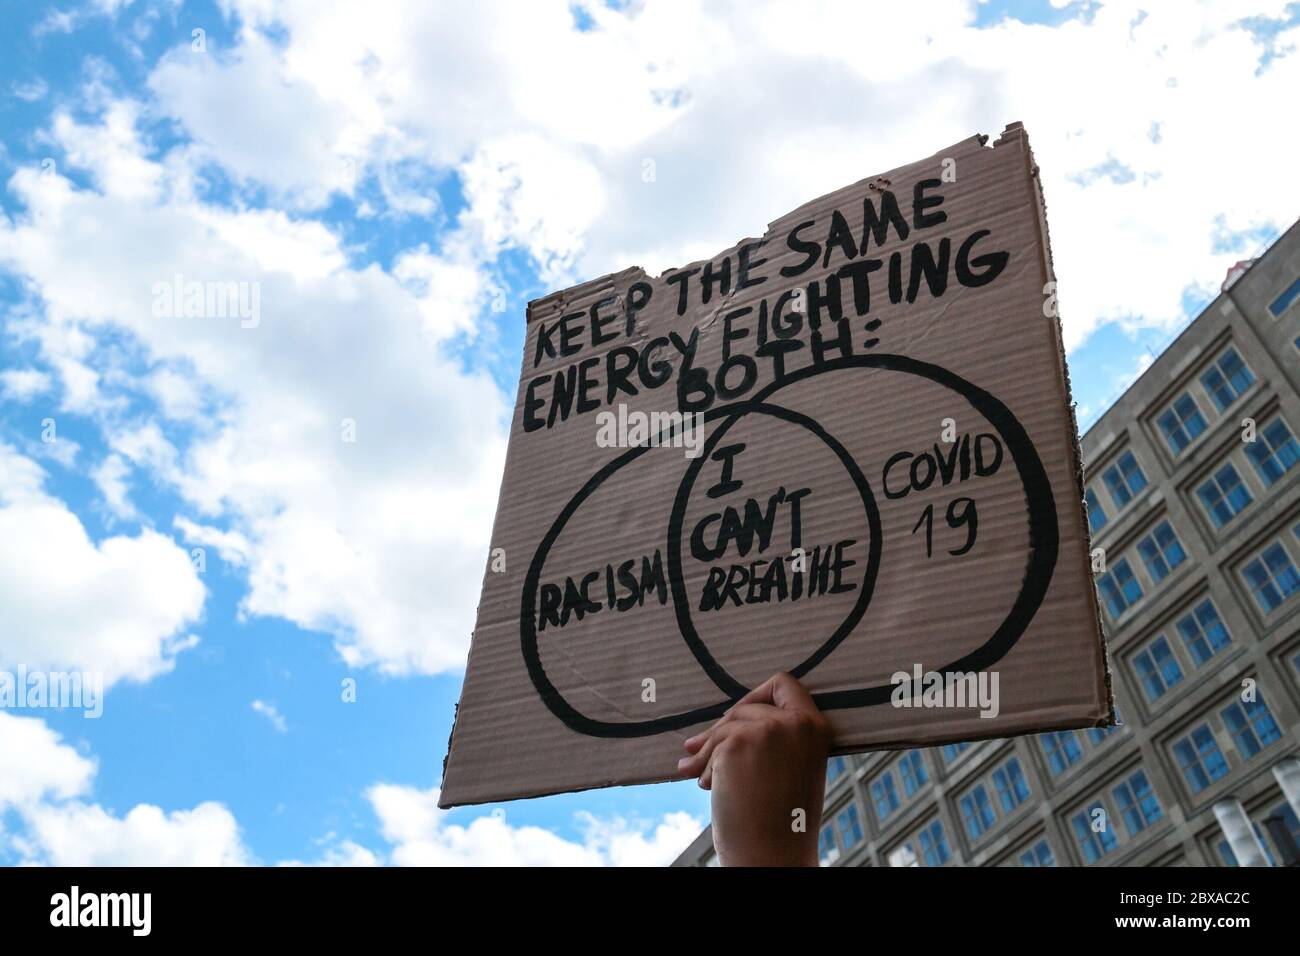 protest-sign-reads-intersection-racism-i